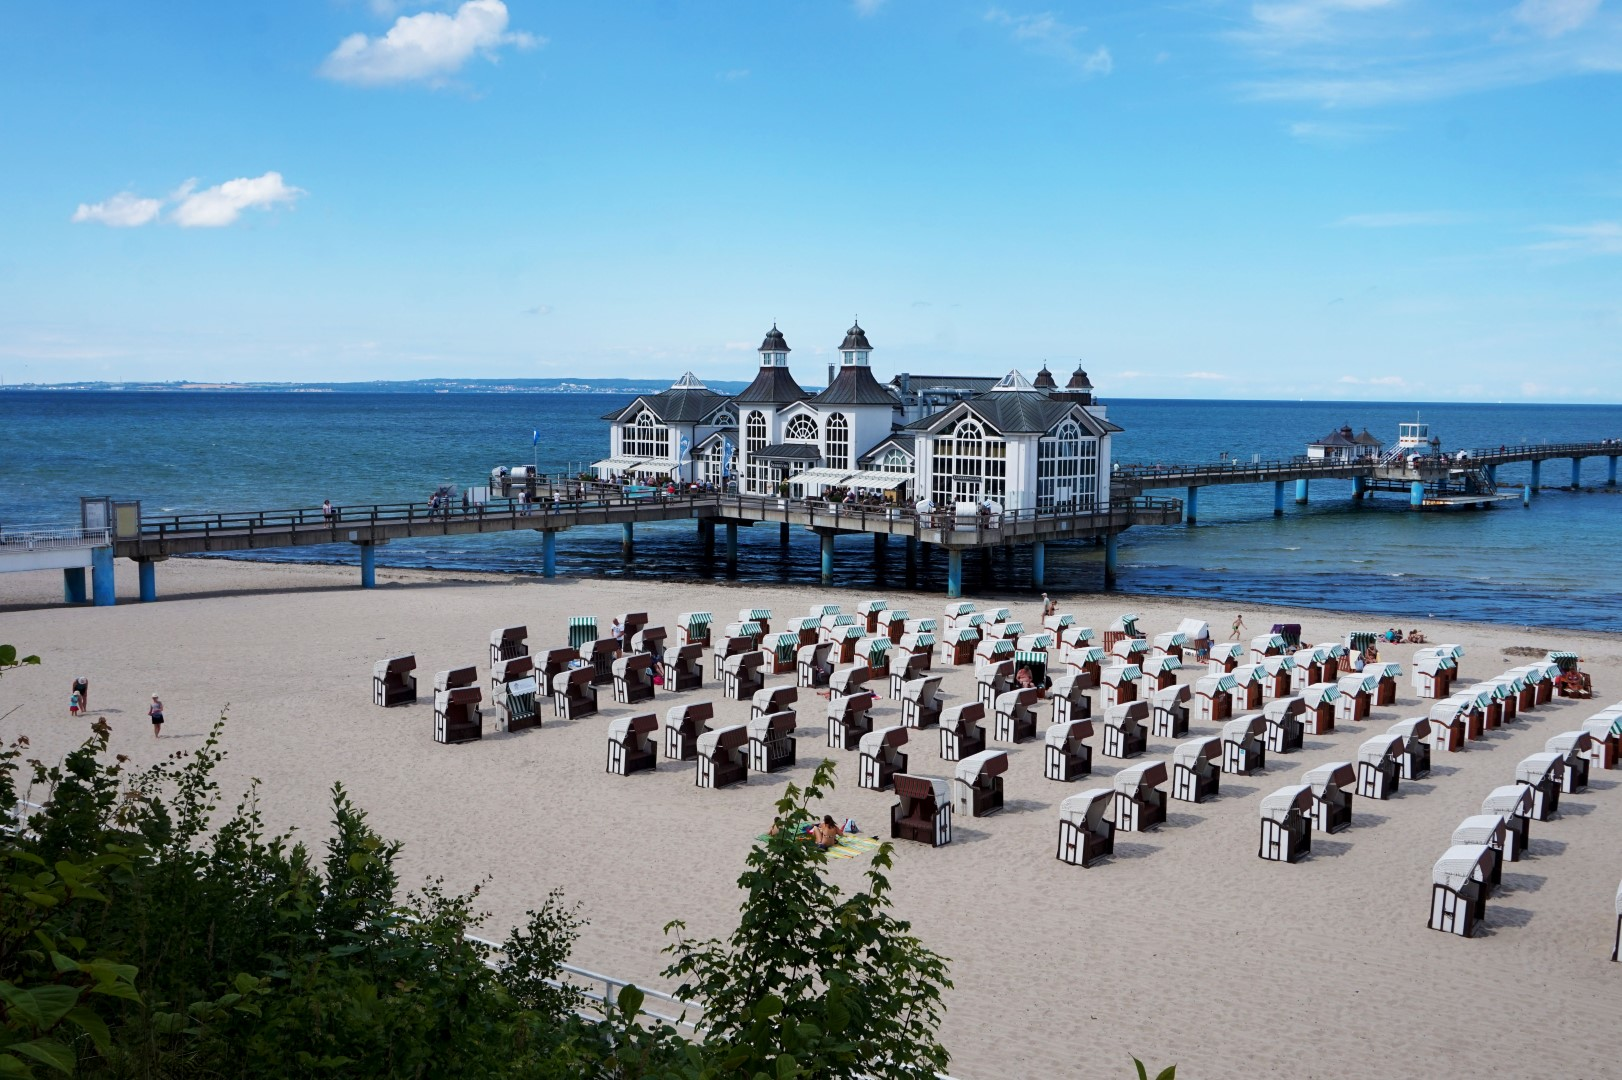 Entre Binz et Sellin (Ile de Rügen) - City Guide - Blog voyage